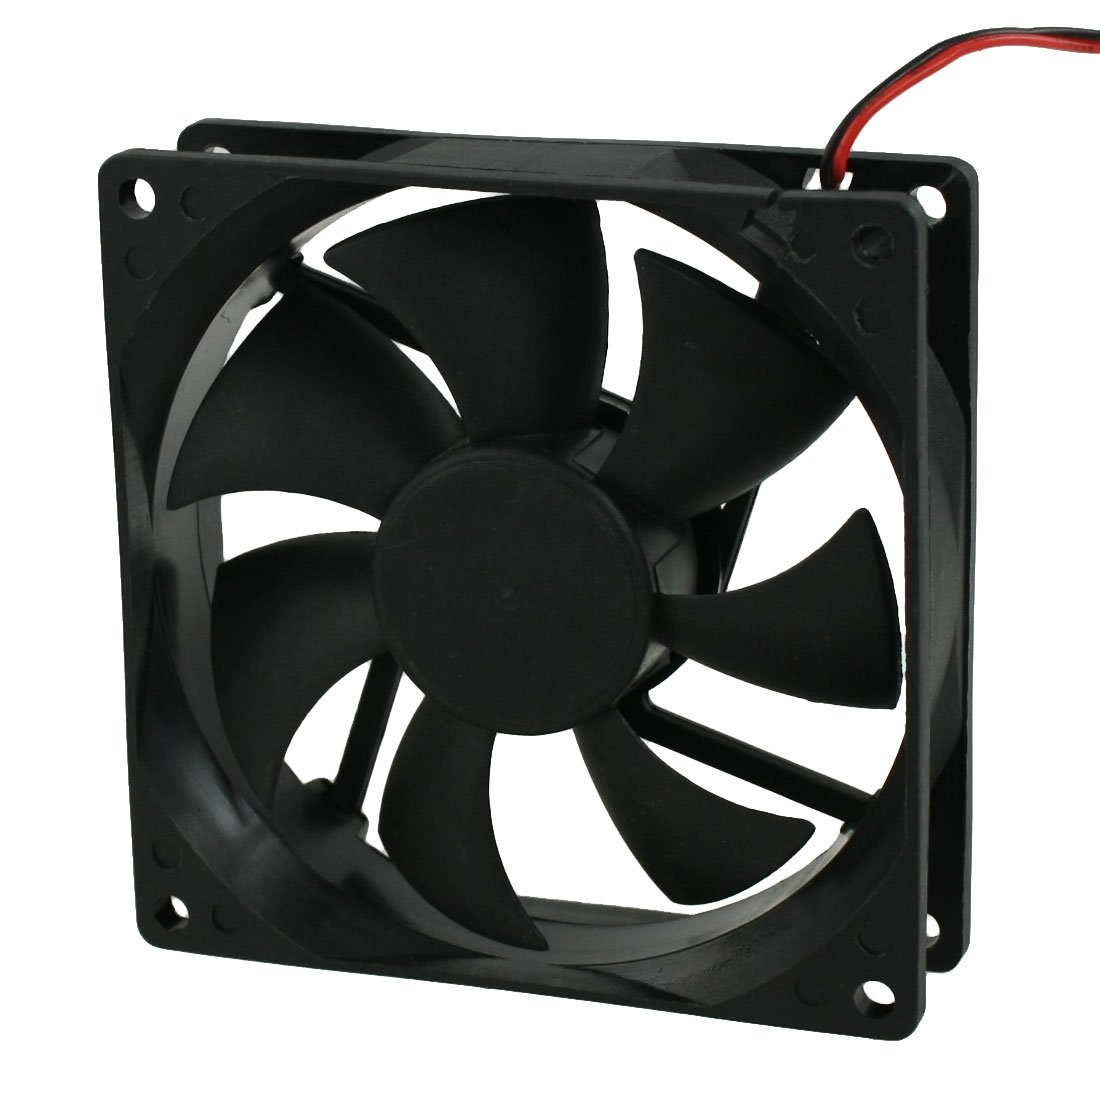 DC 12V 4 Pin Black Plastic PC Cooling Fan 90mm x 90mm x 25mm for desktop computer case new for asus k52 k52j k52f k52jr a52 x52 lcd back cover lcd front bezel cover 13n0 gua0a11 13gnxm1ap051 1